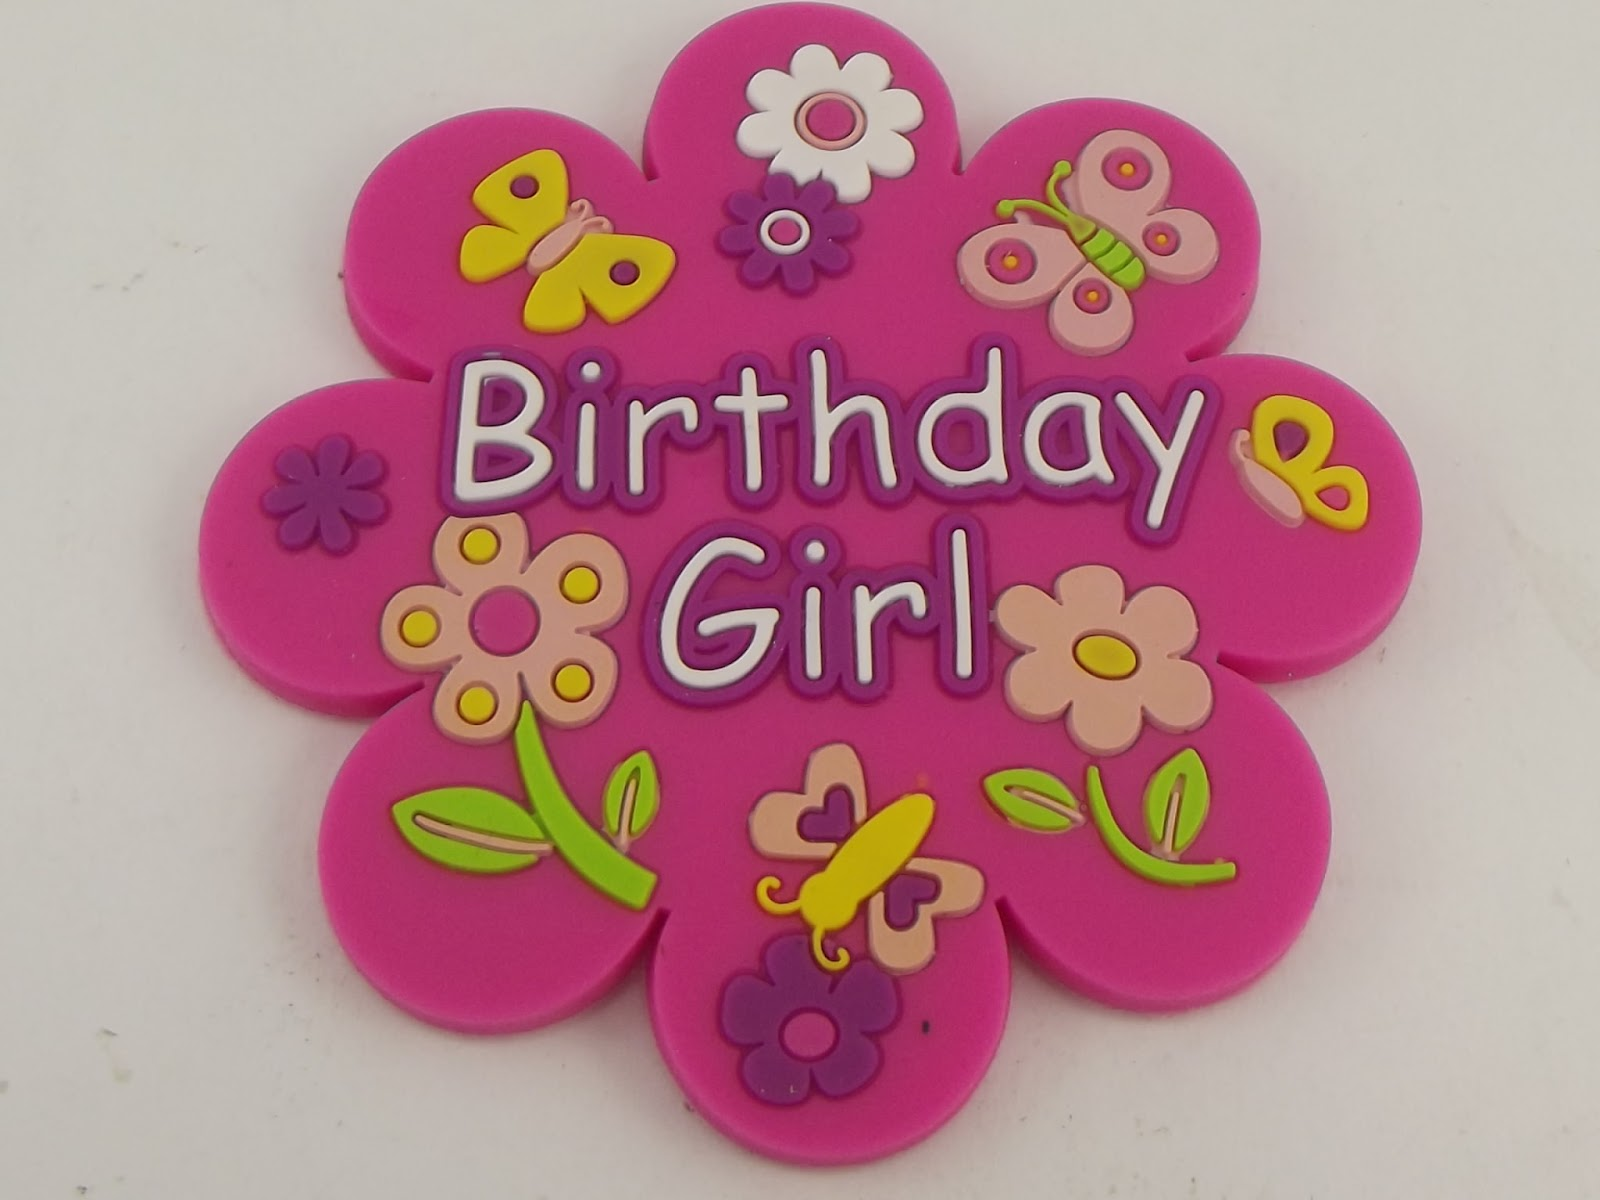 Birthday Wishes for Little Girl | Page 2 | Nicewishes.com